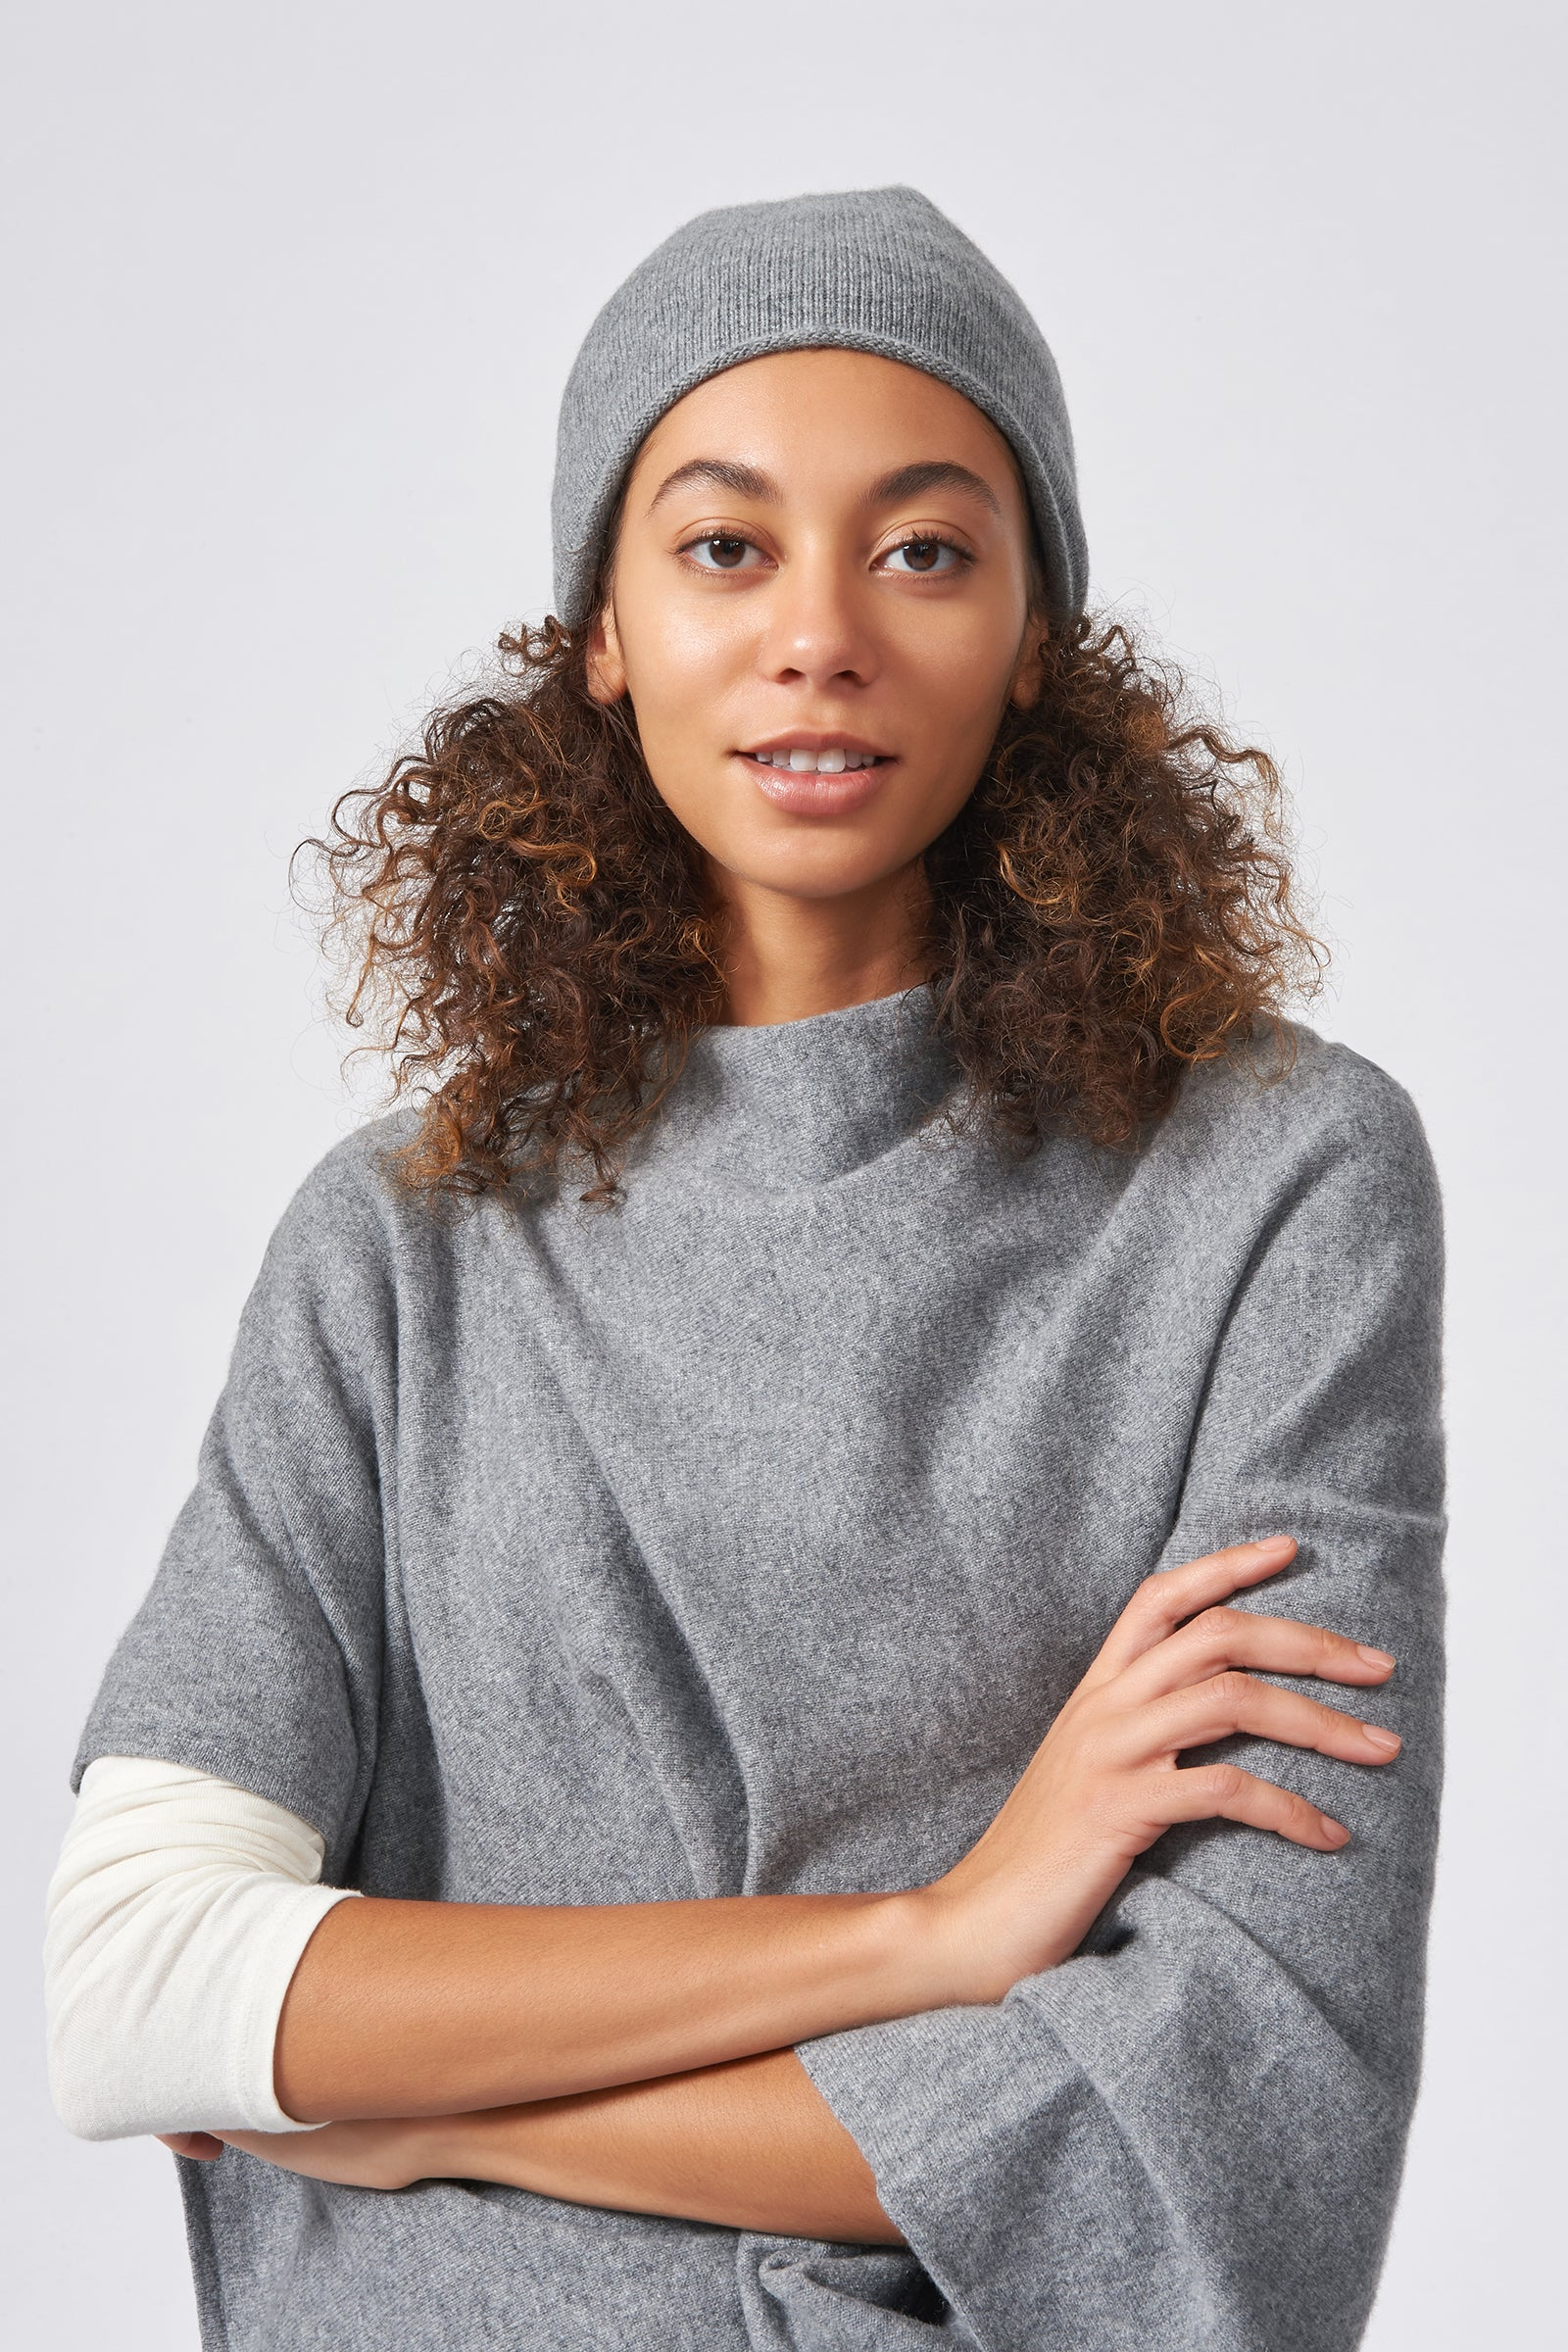 Kal Rieman Cashmere Cap in Flannel Grey on Model Front View